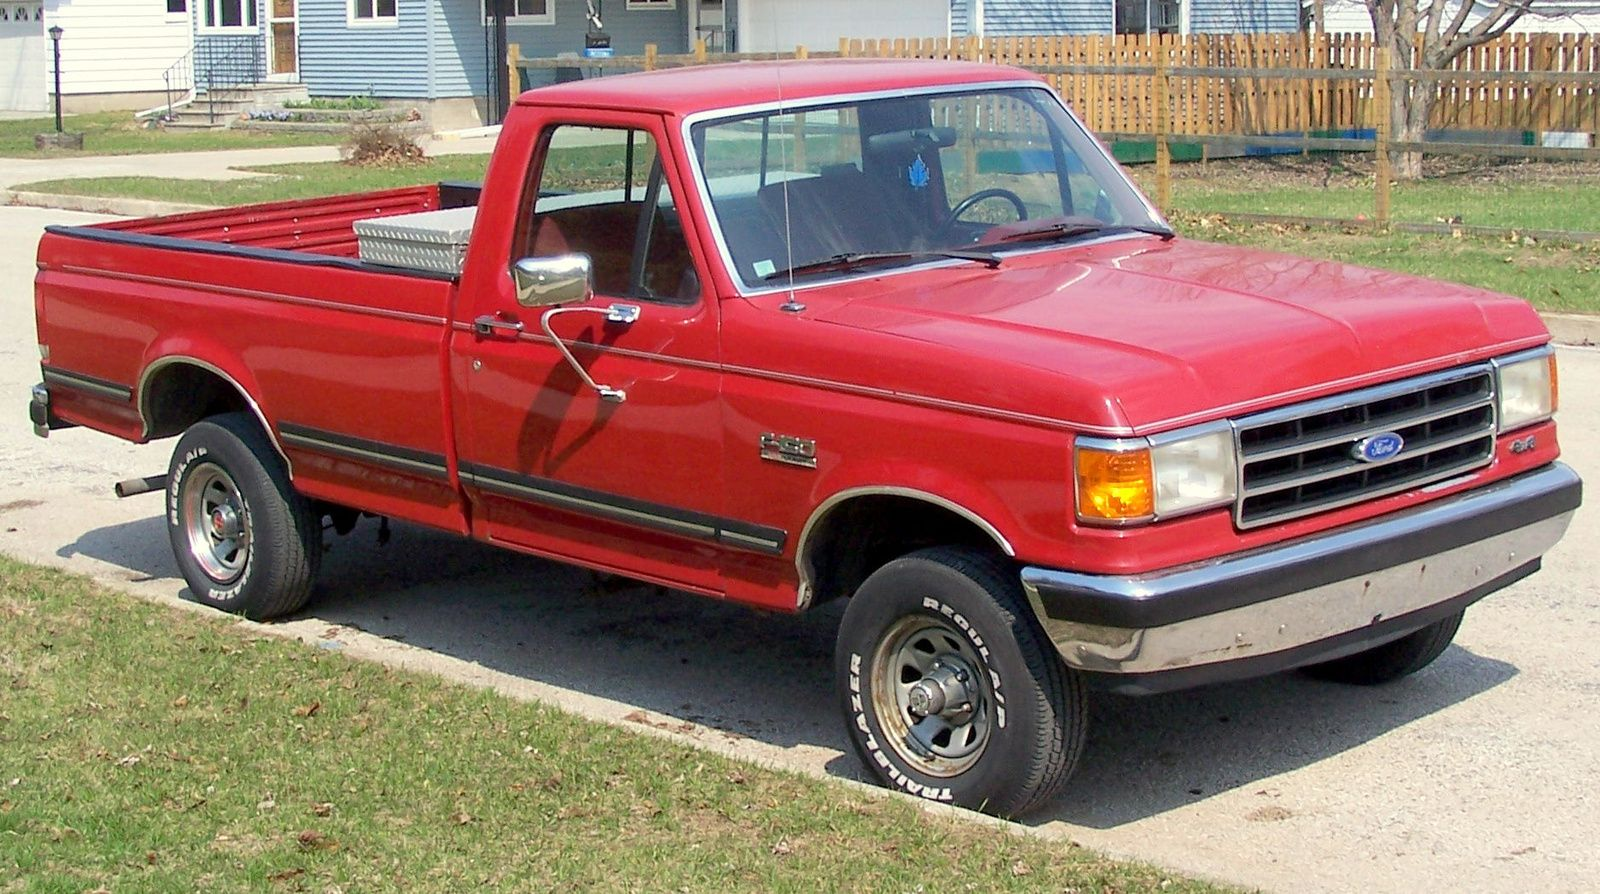 1989 ford f150 my very 1st vehicle except mine was a white extended cab with a camper shell